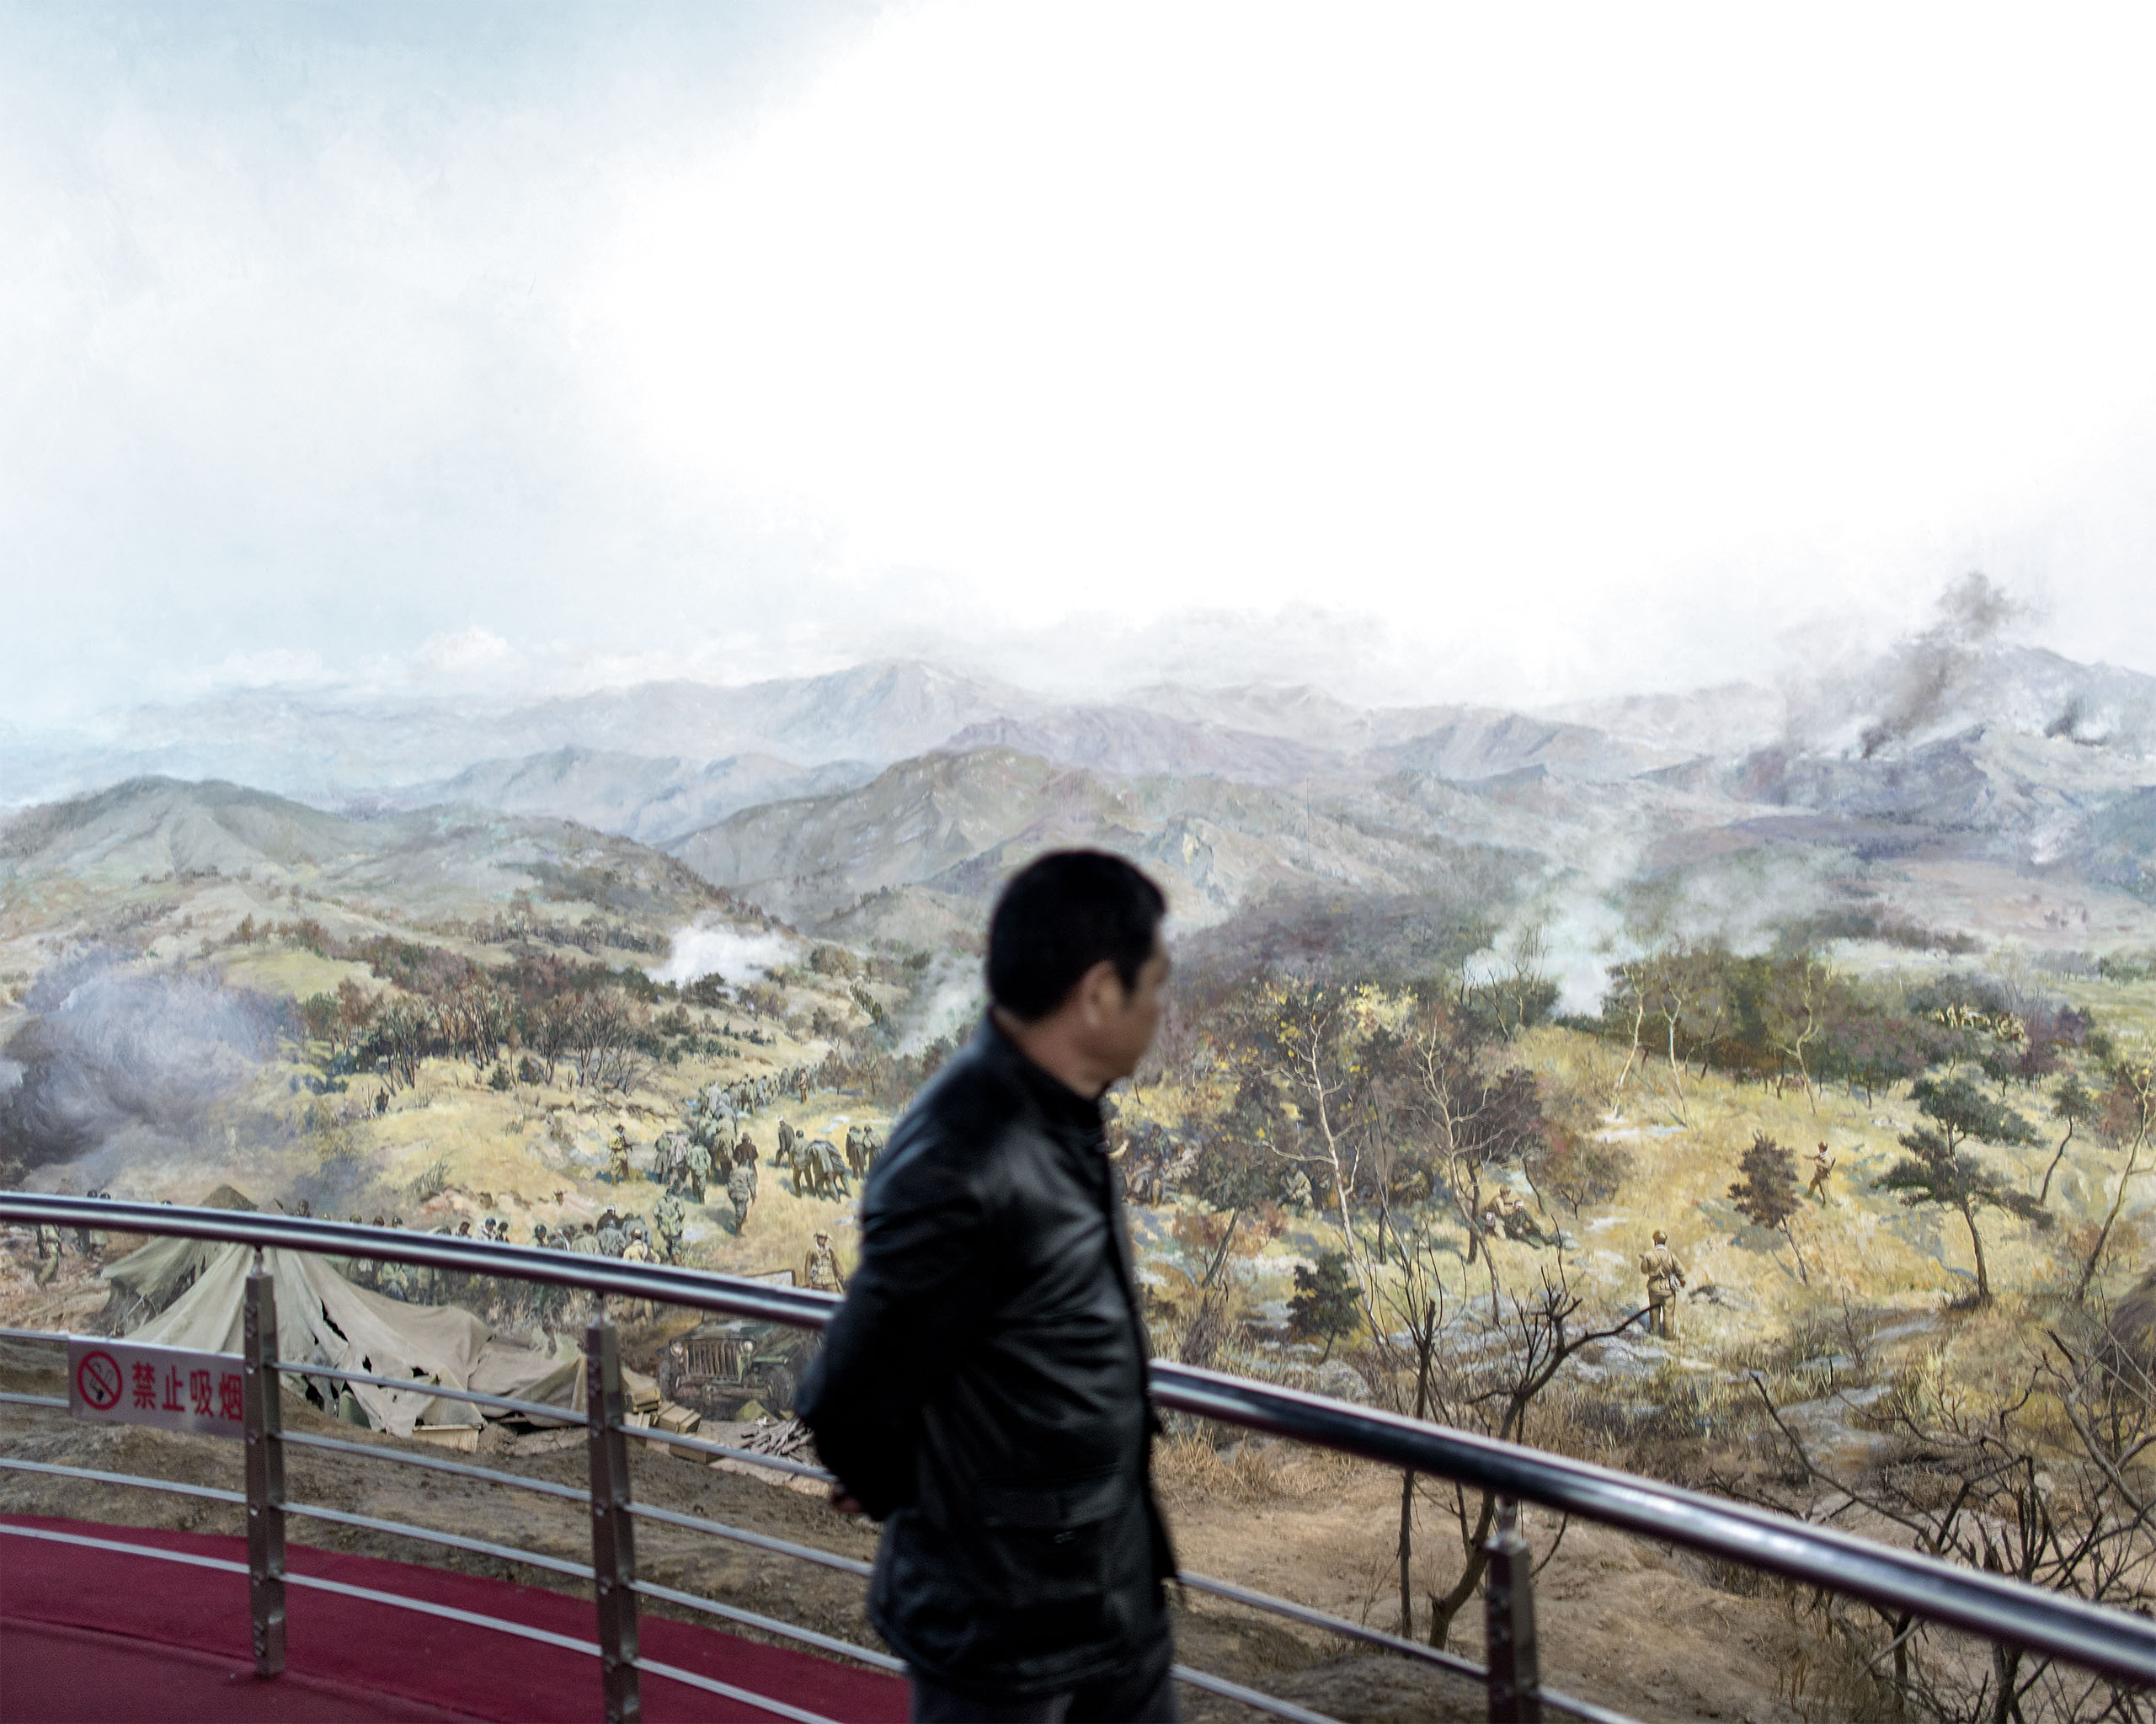 A man observes a diorama in China's only Korean War museum in Dandong, China. The Chinese People's Liberation Army entered Korea to fight against the United States involvement when the Korean War broke out in 1950.  Dandong, a frontier town, experienced first-hand the horrors of war.